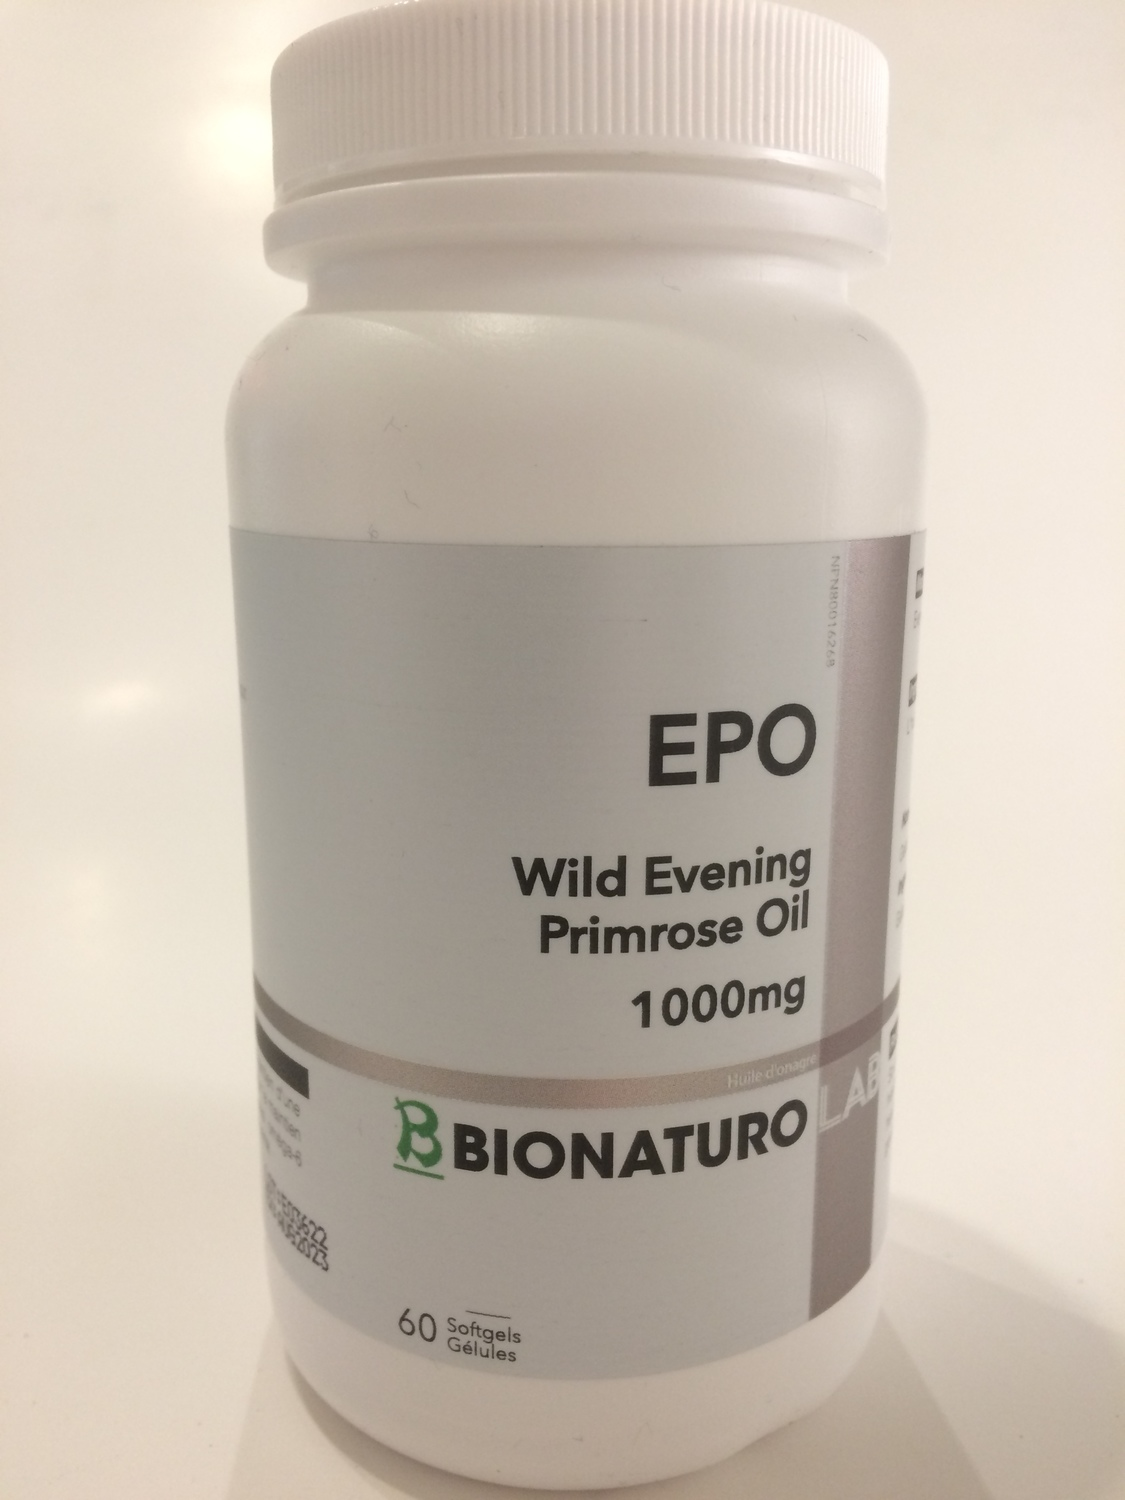 EPO Wild Evening Primrose Oil